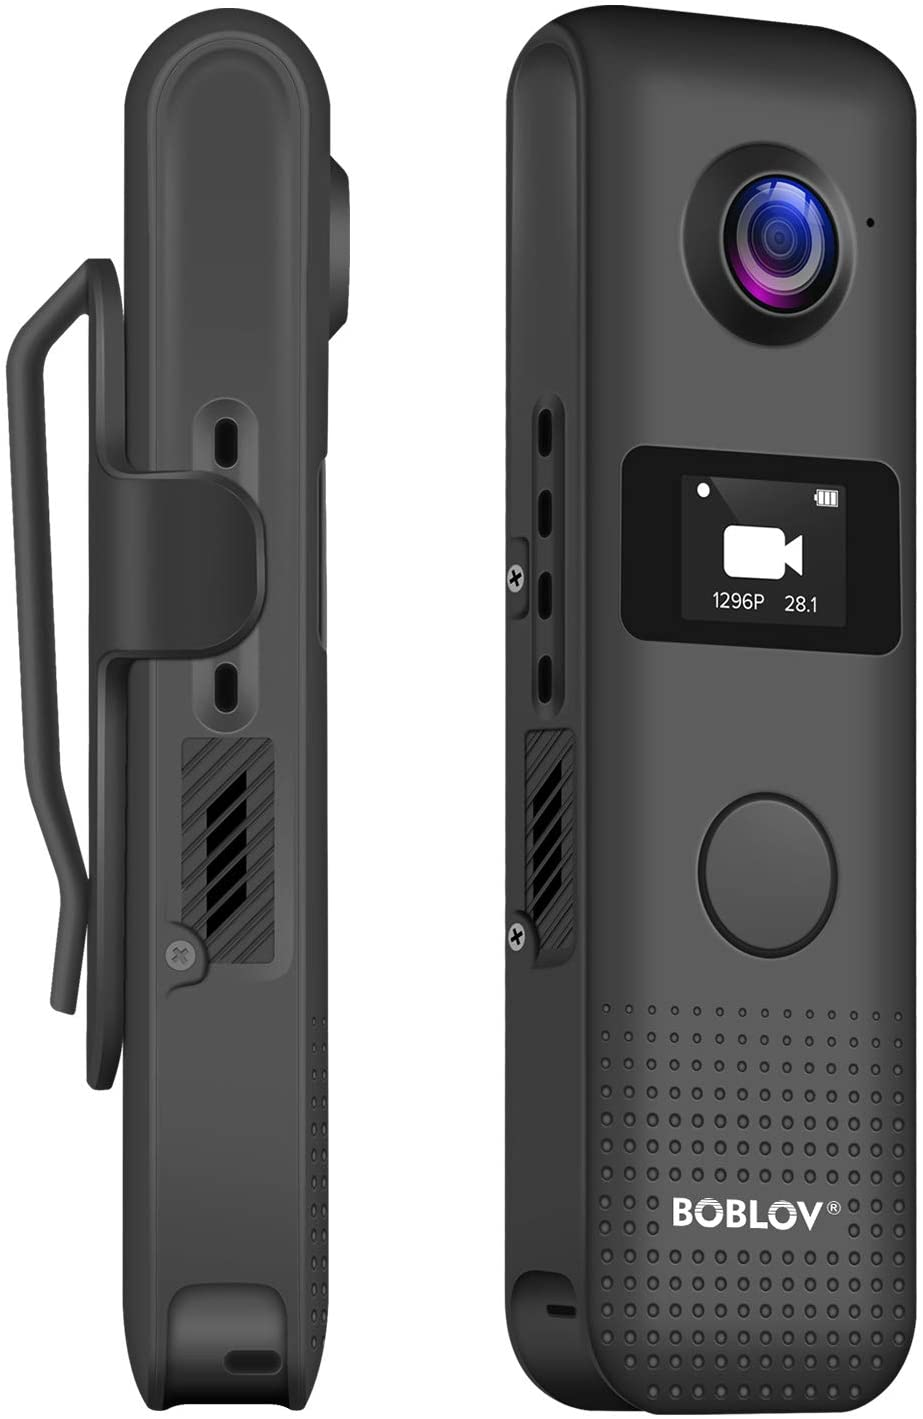 BOBLOV C18 WiFi 1080P Body Camera with OLED Screen and One Big Button for Recording 4Hours 1080P Recording Clip for Wearable (32GB)